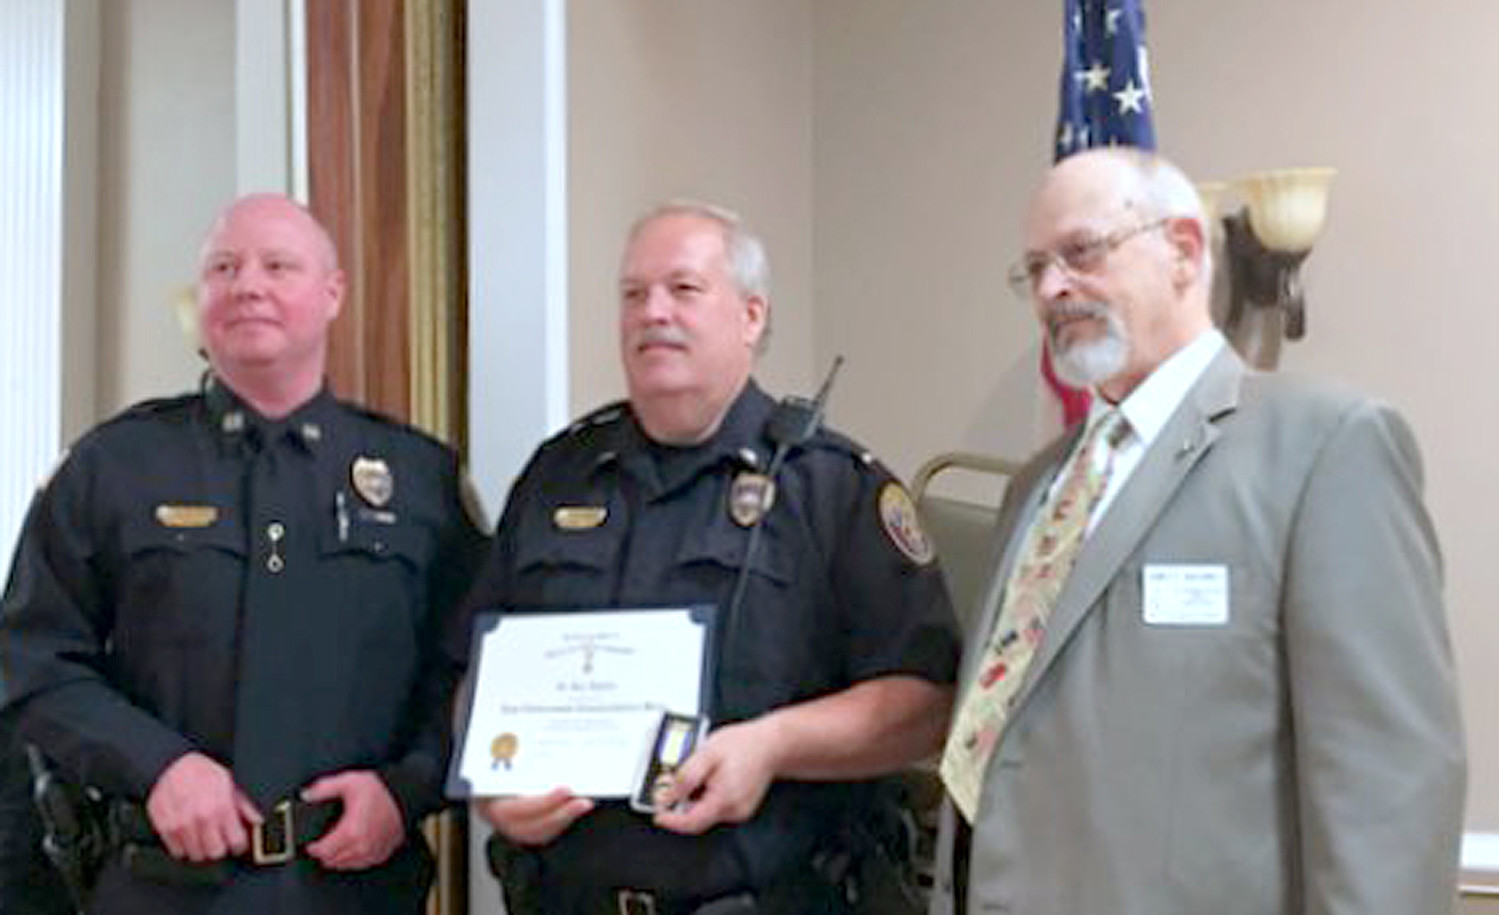 LT. KEN HIGDON, center, was recipient of the Col. Benjamin Cleveland Chapter of the Sons of the American Revolution Law Enforcement Commendation.  A member of the Cleveland Police Department, Higdon was presented the award by Capt. Stacy Smith and First Vice President Jim McKinney.